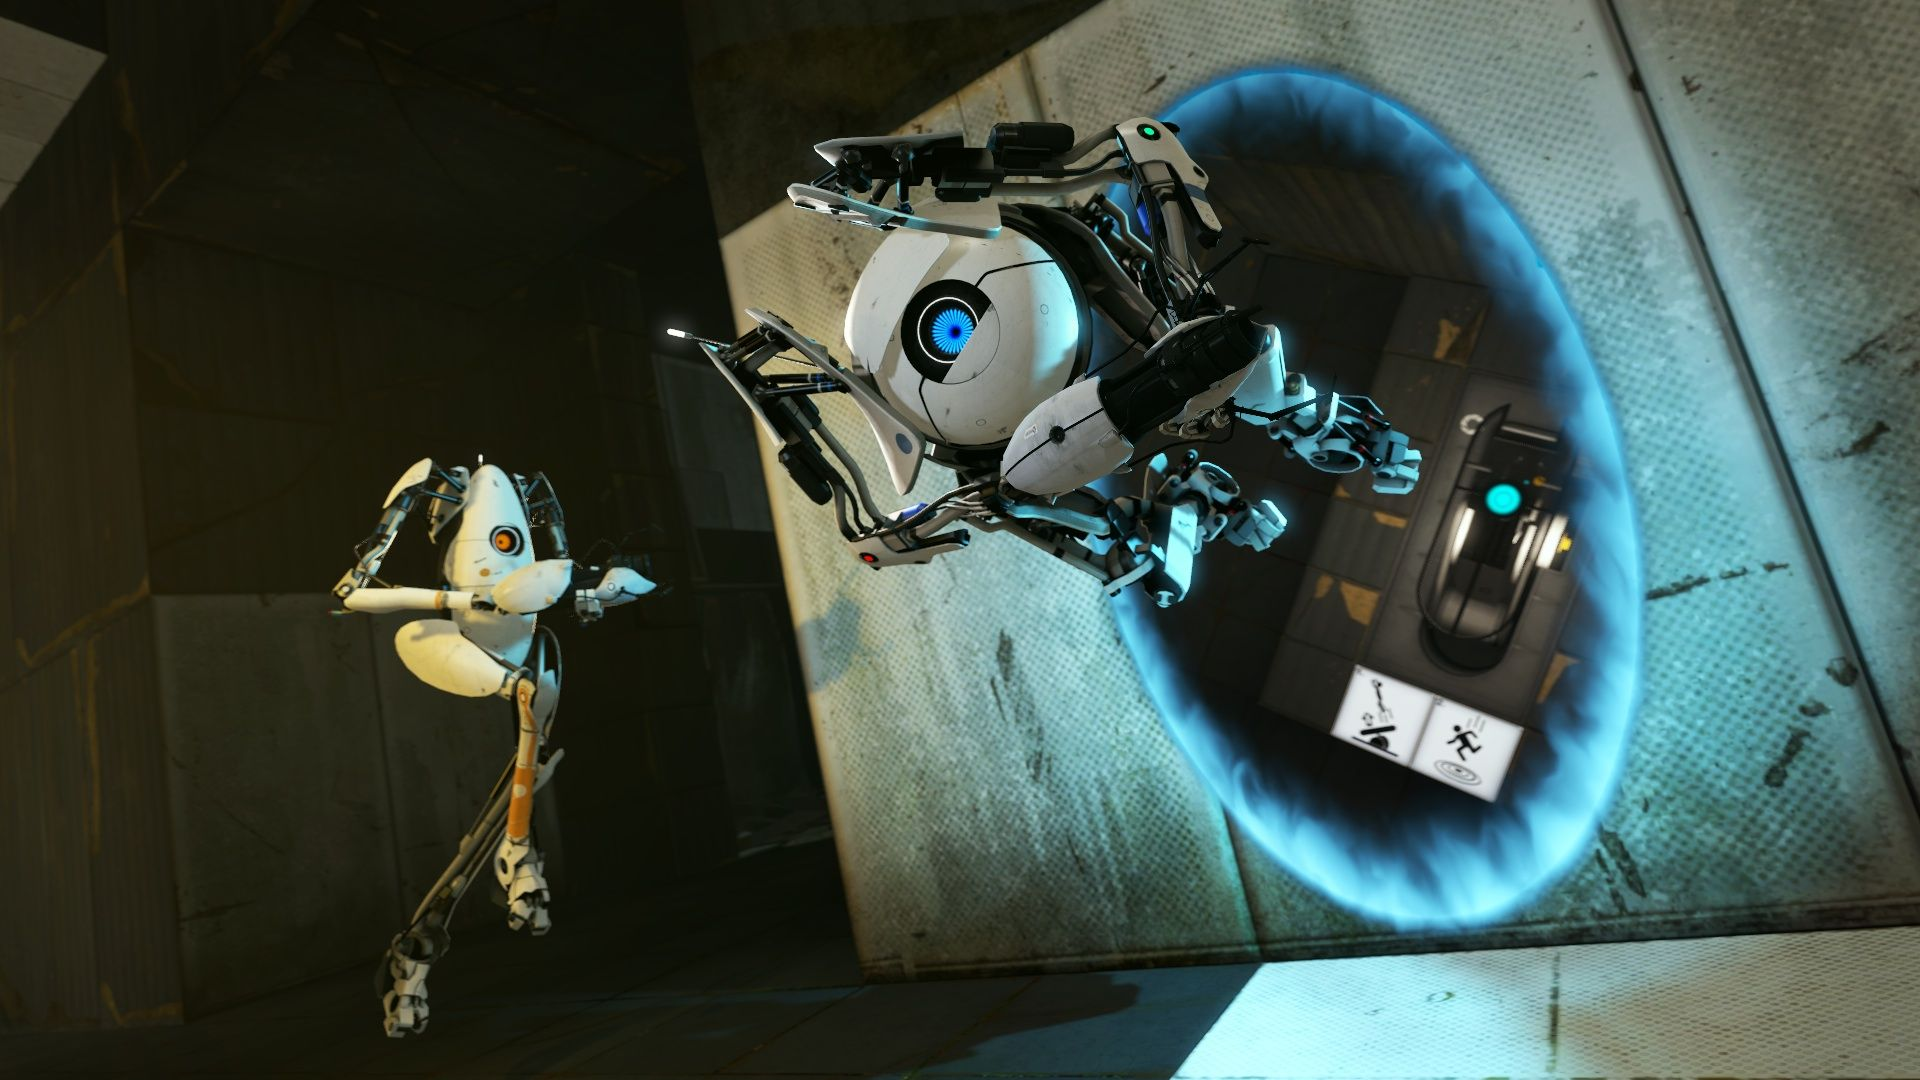 Portal 2 Review Shooers Portal movie Portal 2 Portal wallpaper 1920x1080